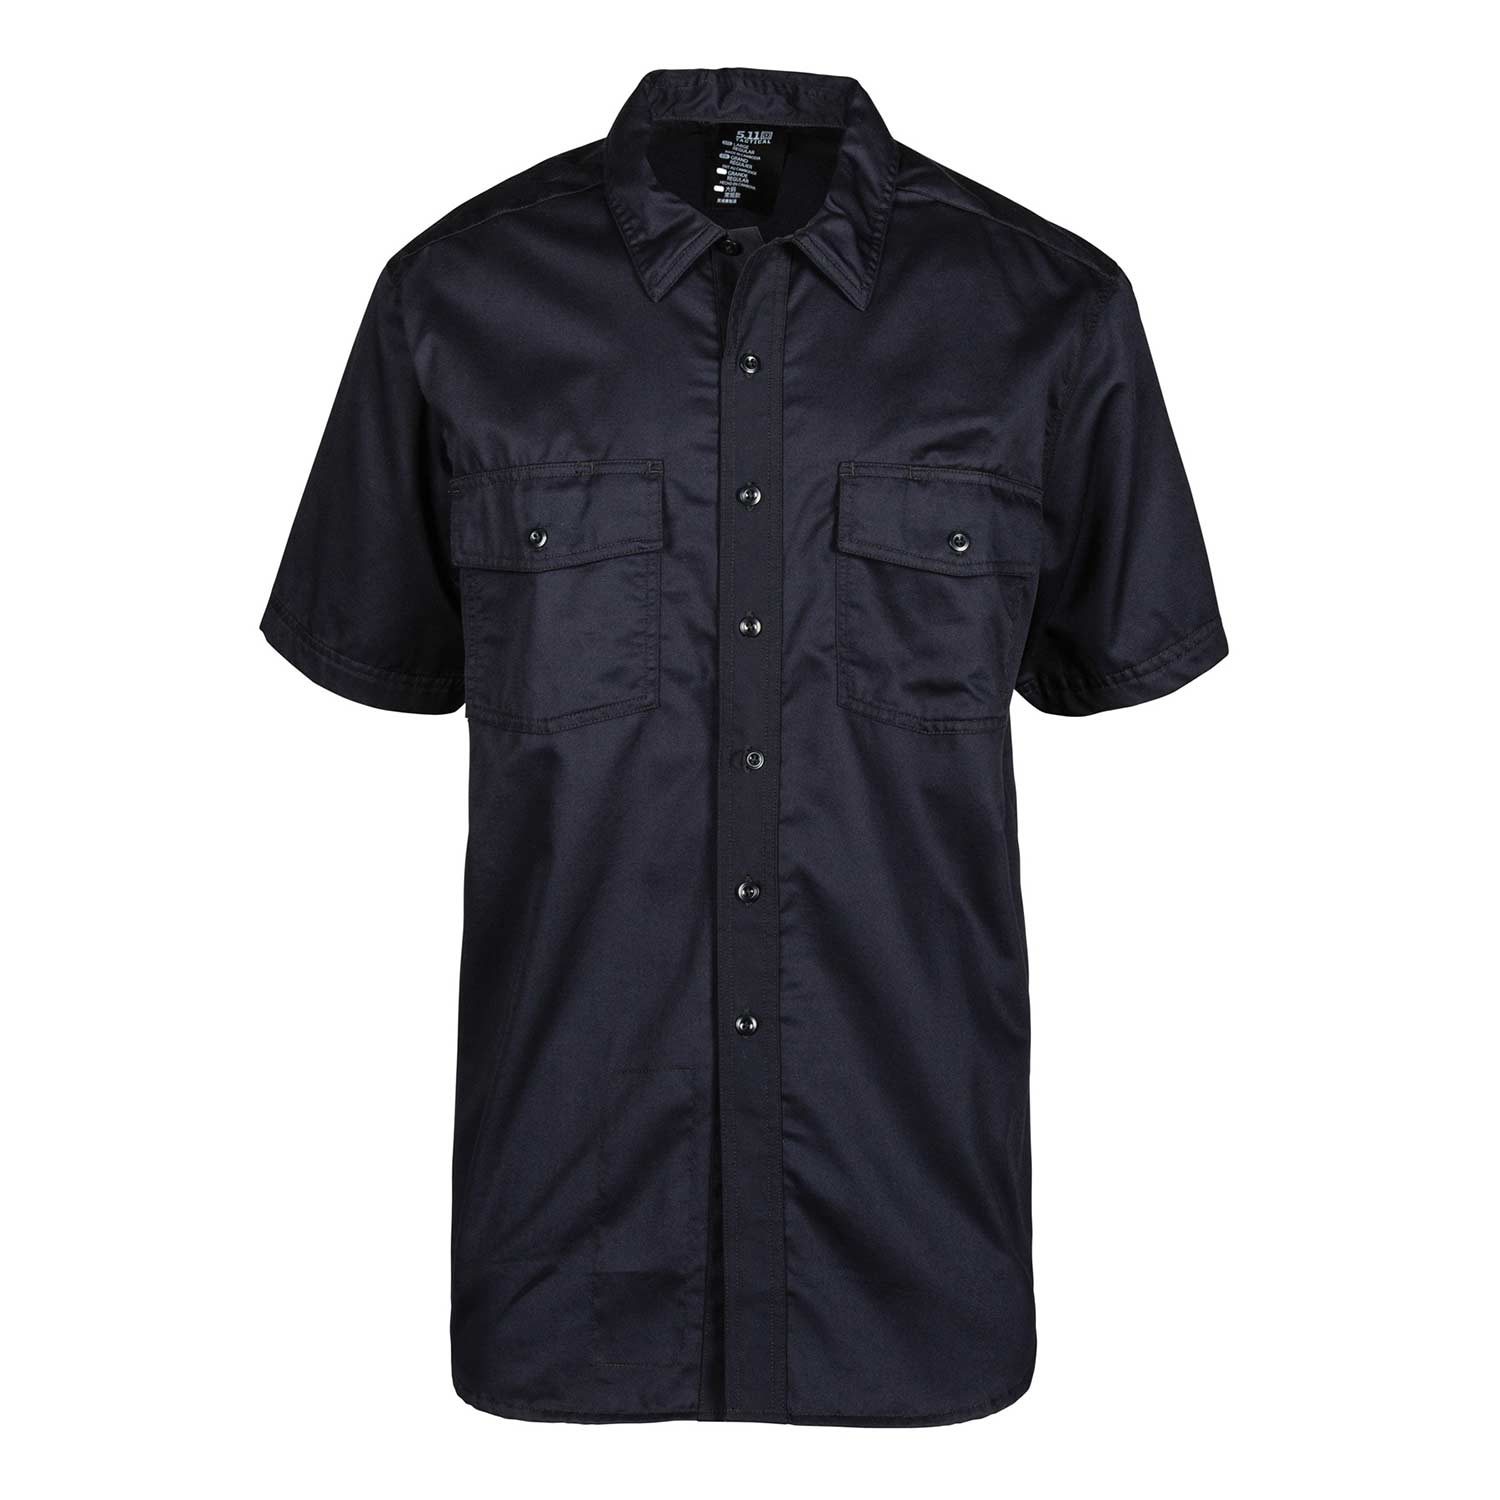 5.11 Tactical Short Sleeve Company Shirt